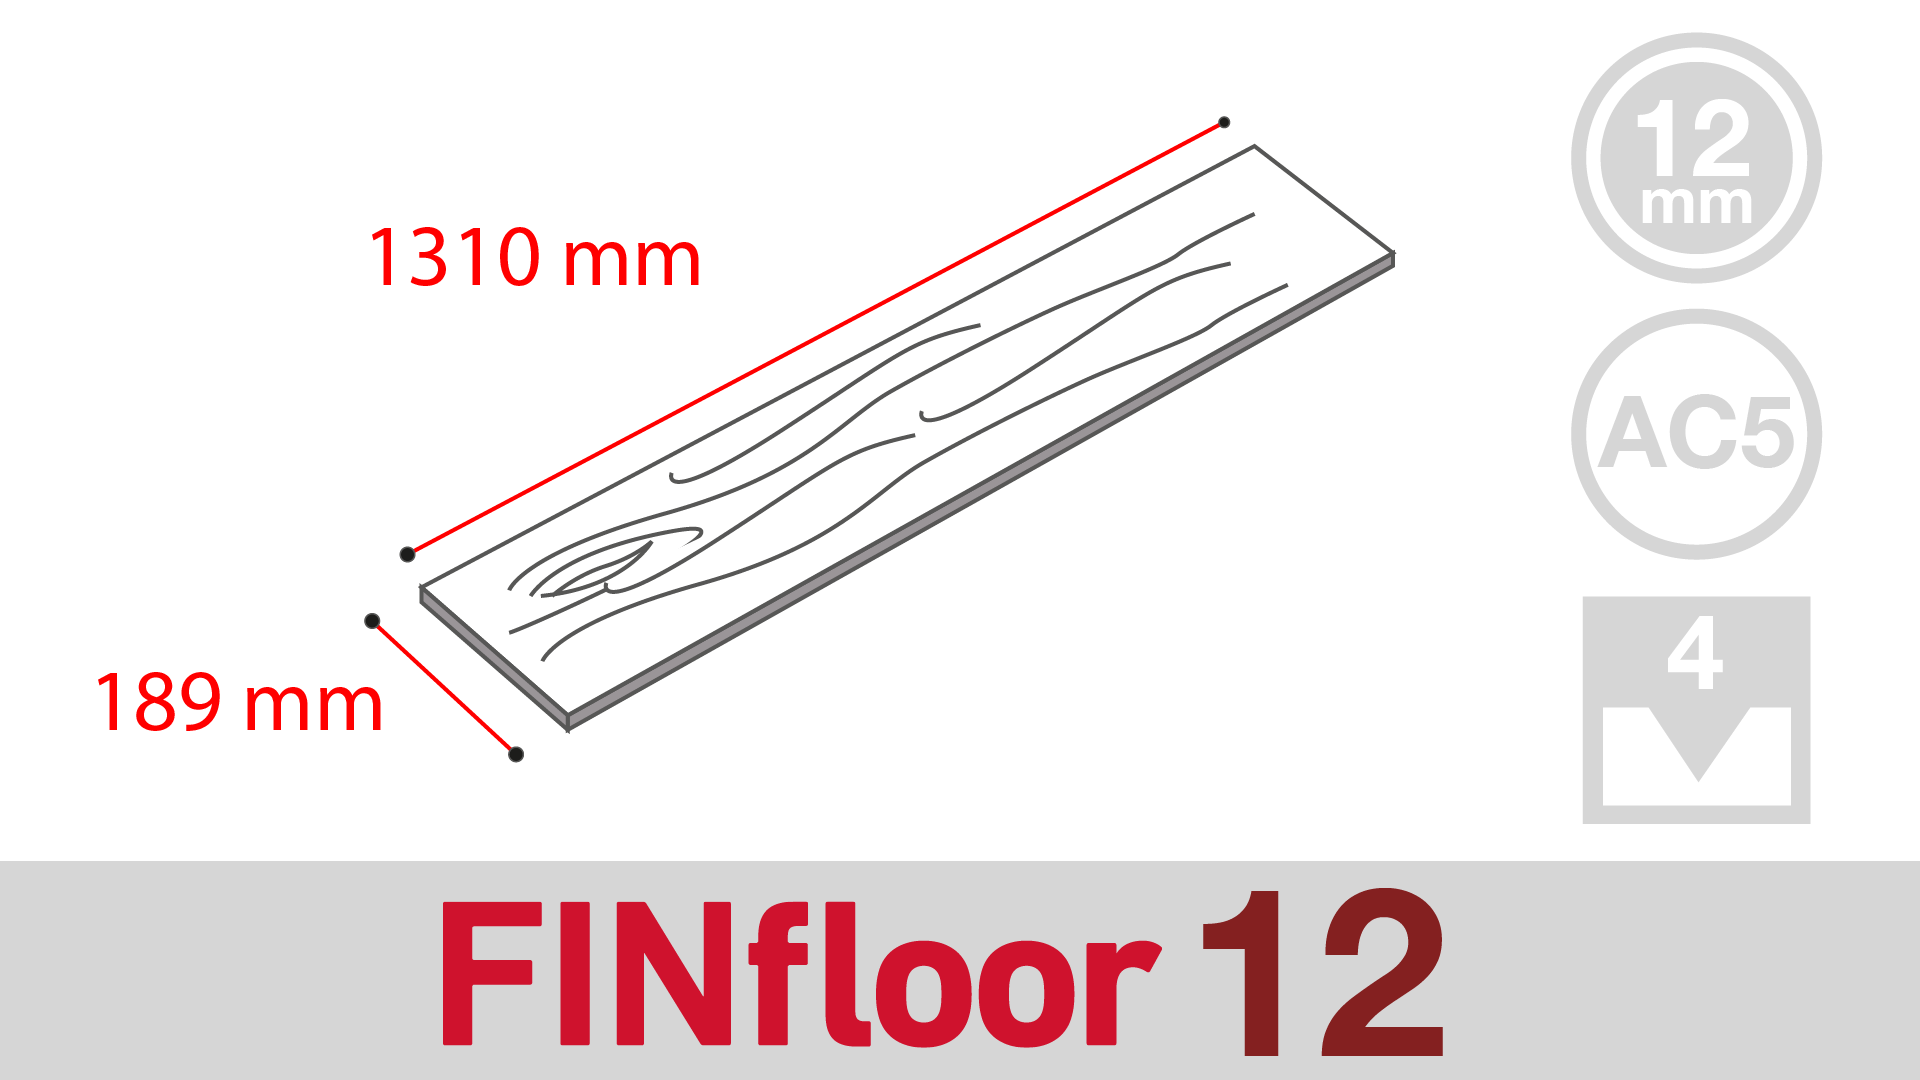 FINfloor 12 (12mm Bevelled)